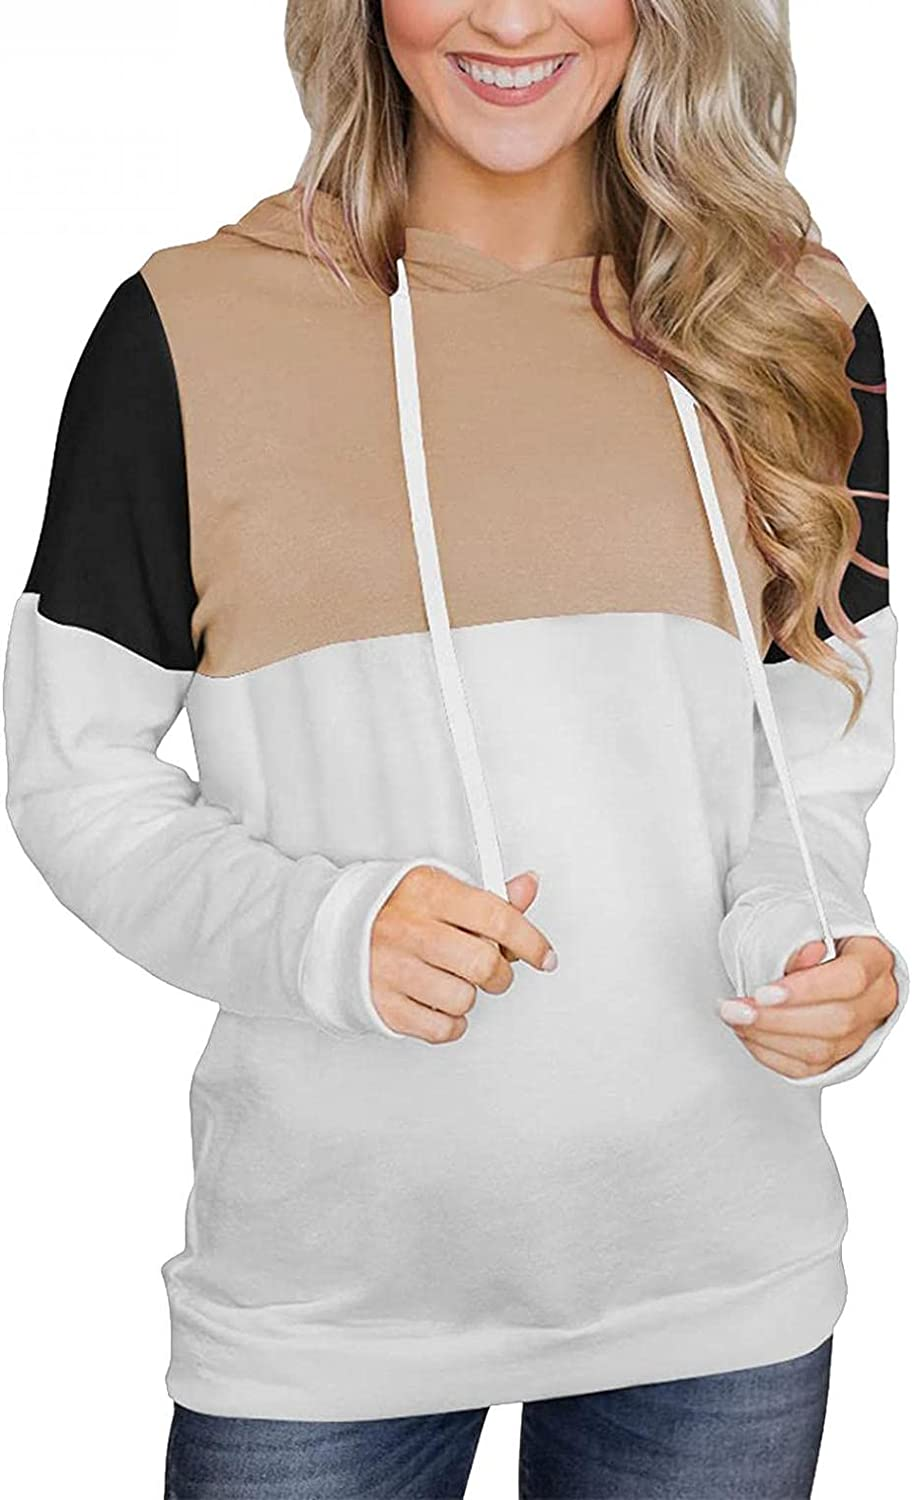 Haheyrte Hoodies for Womens Womens Color Block Print Long Sleeve Hooded Sweatshirts Casual Pullover Tops Shirts Sweaters